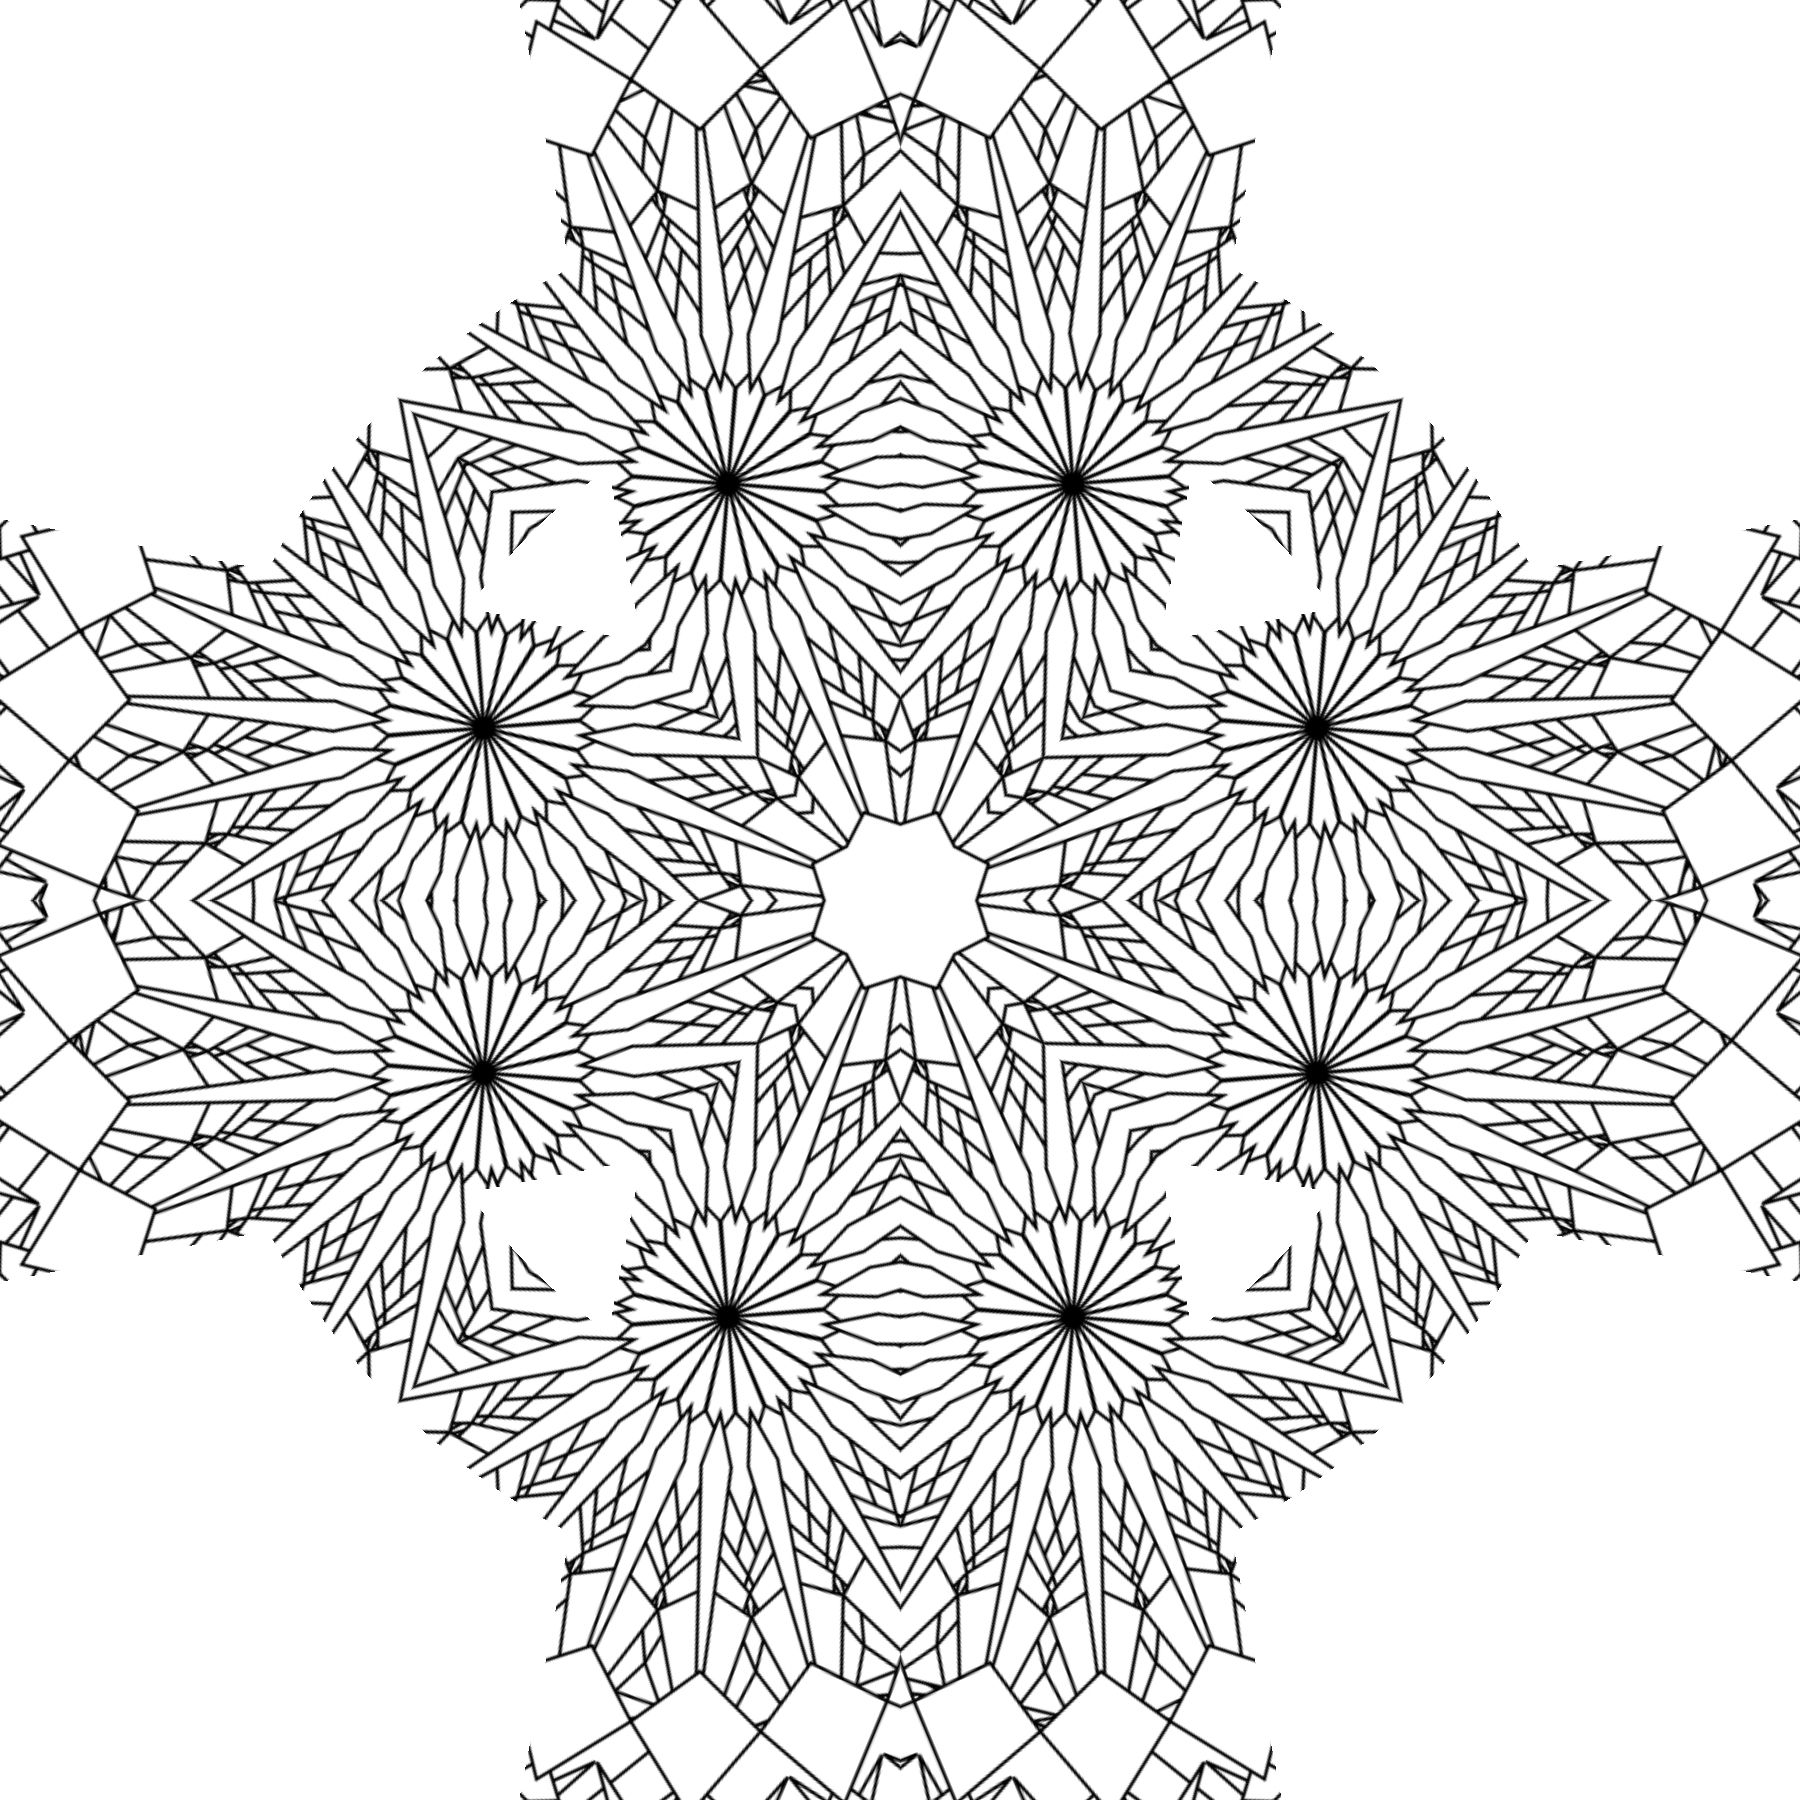 coloring pages for adults patterns pretty people free colouring pages coloring patterns for pages adults